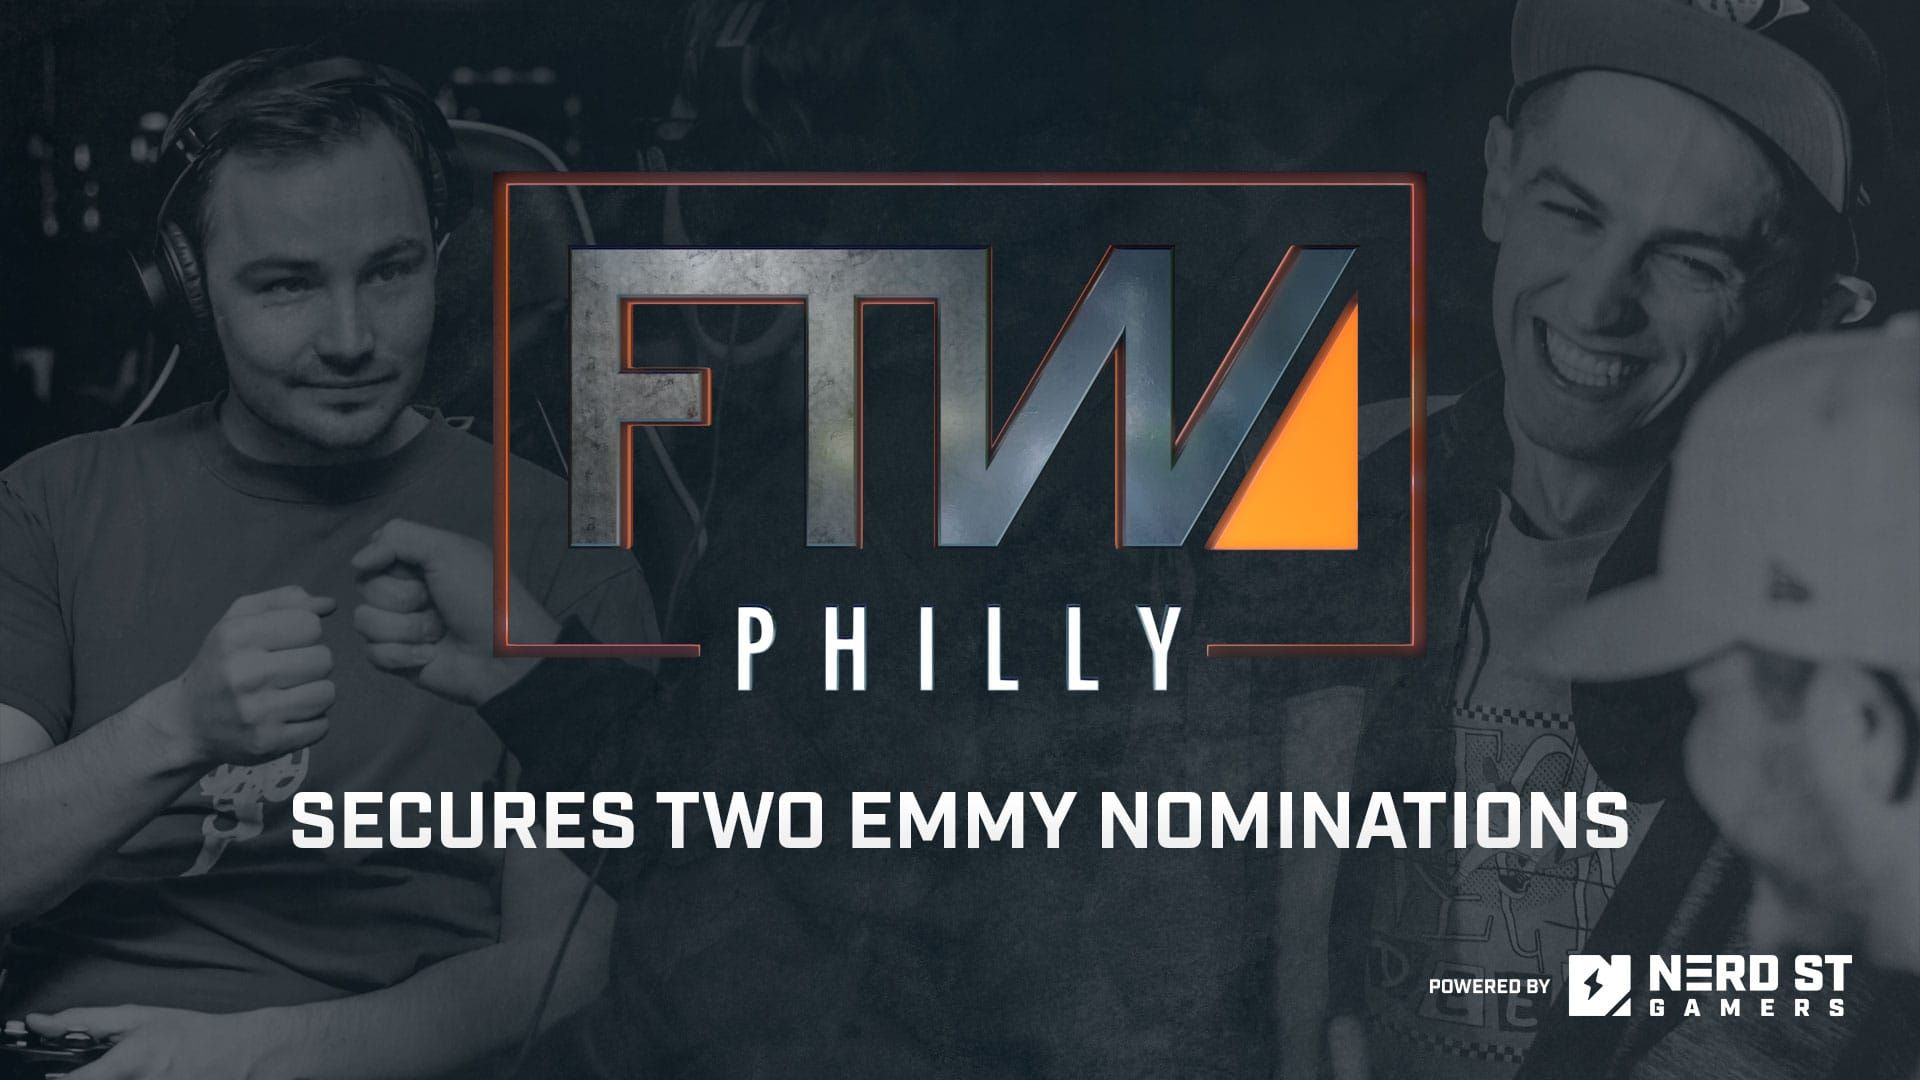 Nerd Street Gamers Secures Two Emmy Nominations for FTW Philly